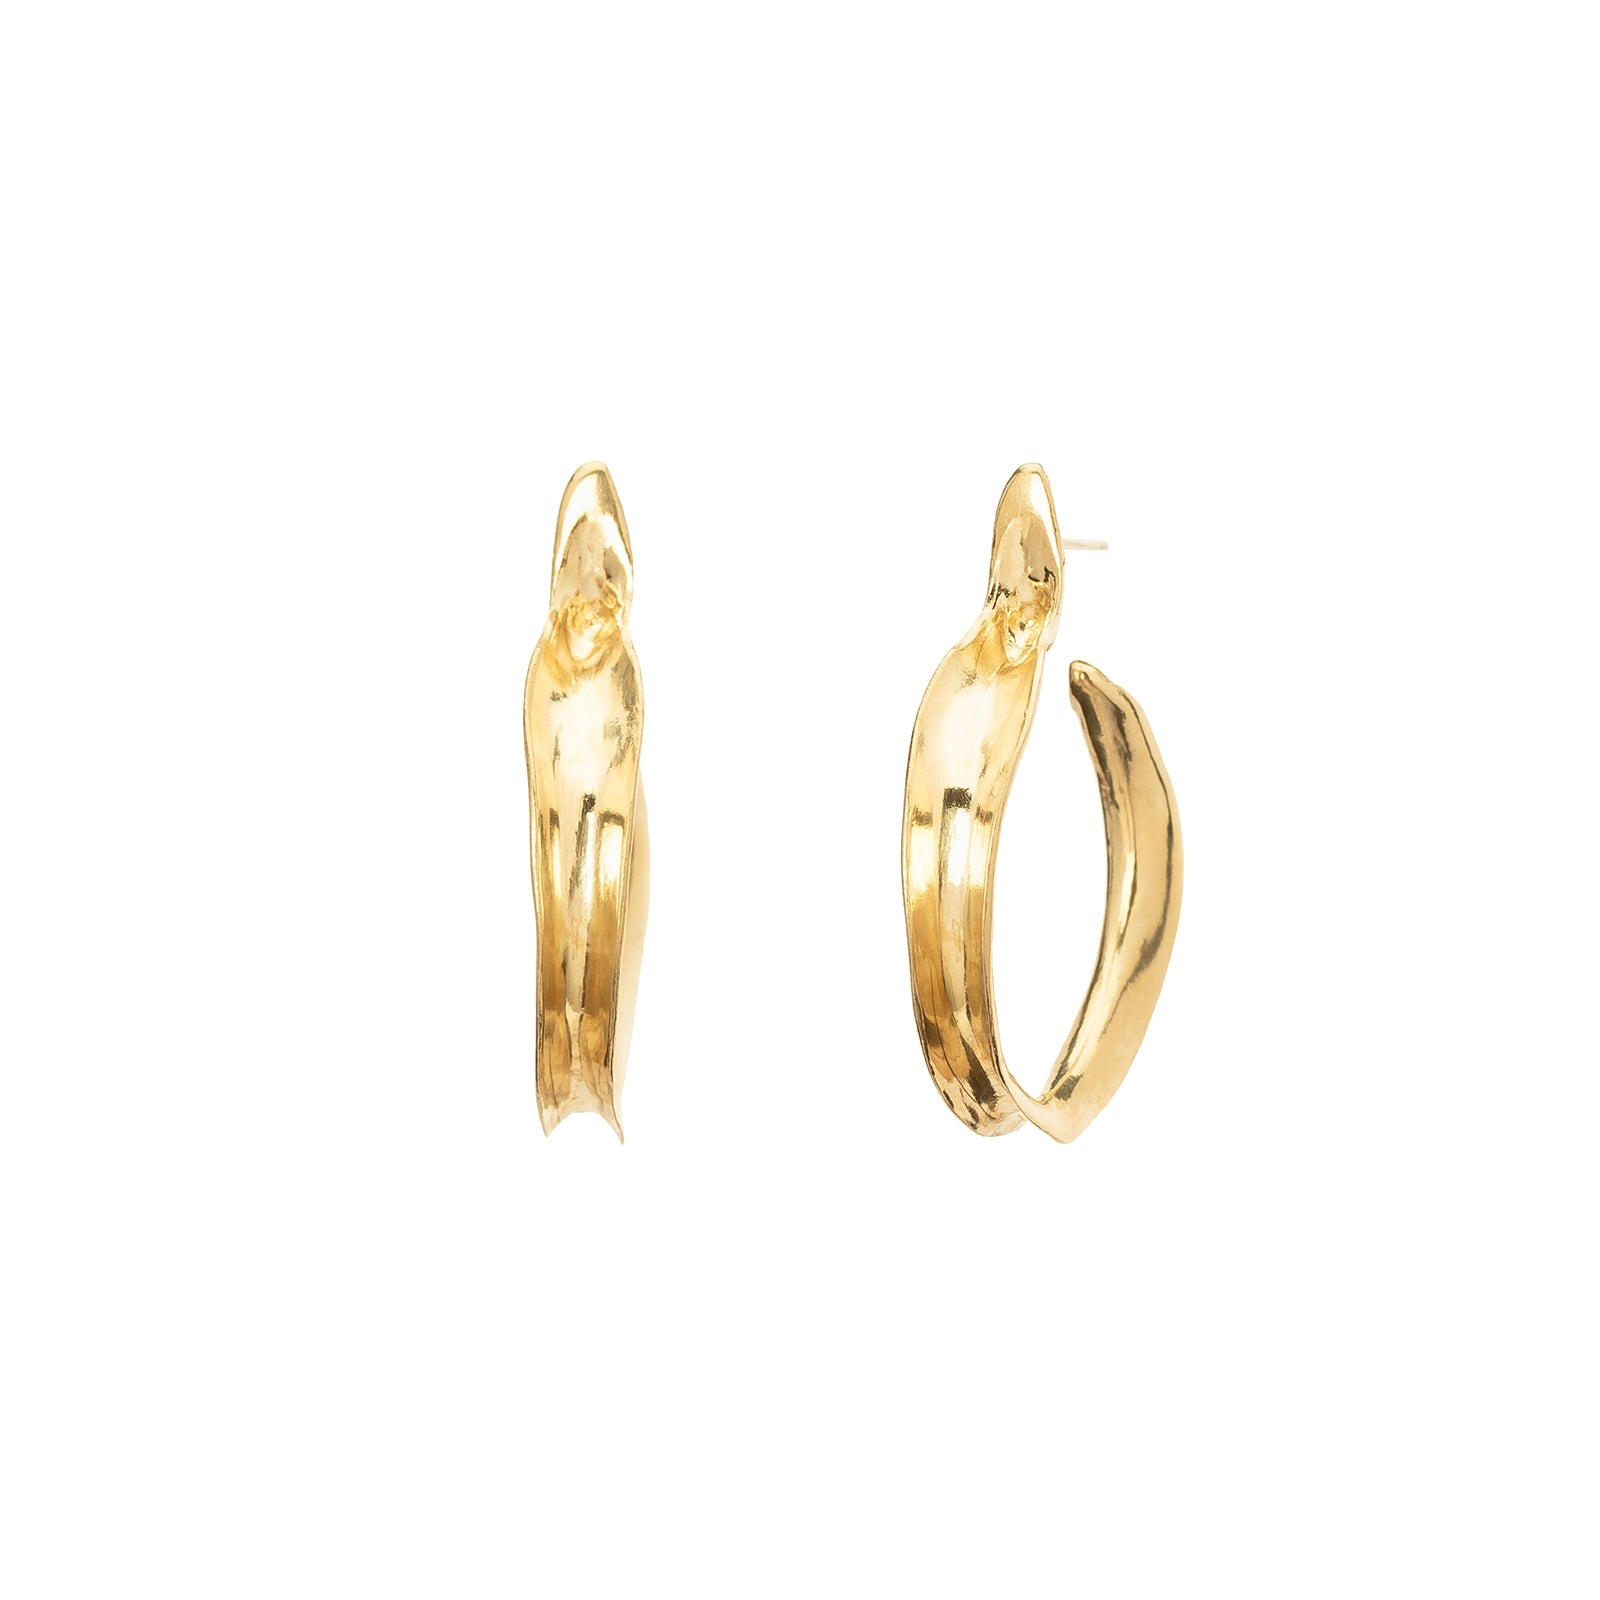 Ariana Boussard-Reifel Kiki Earrings - Brass - Earrings - Broken English Jewelry